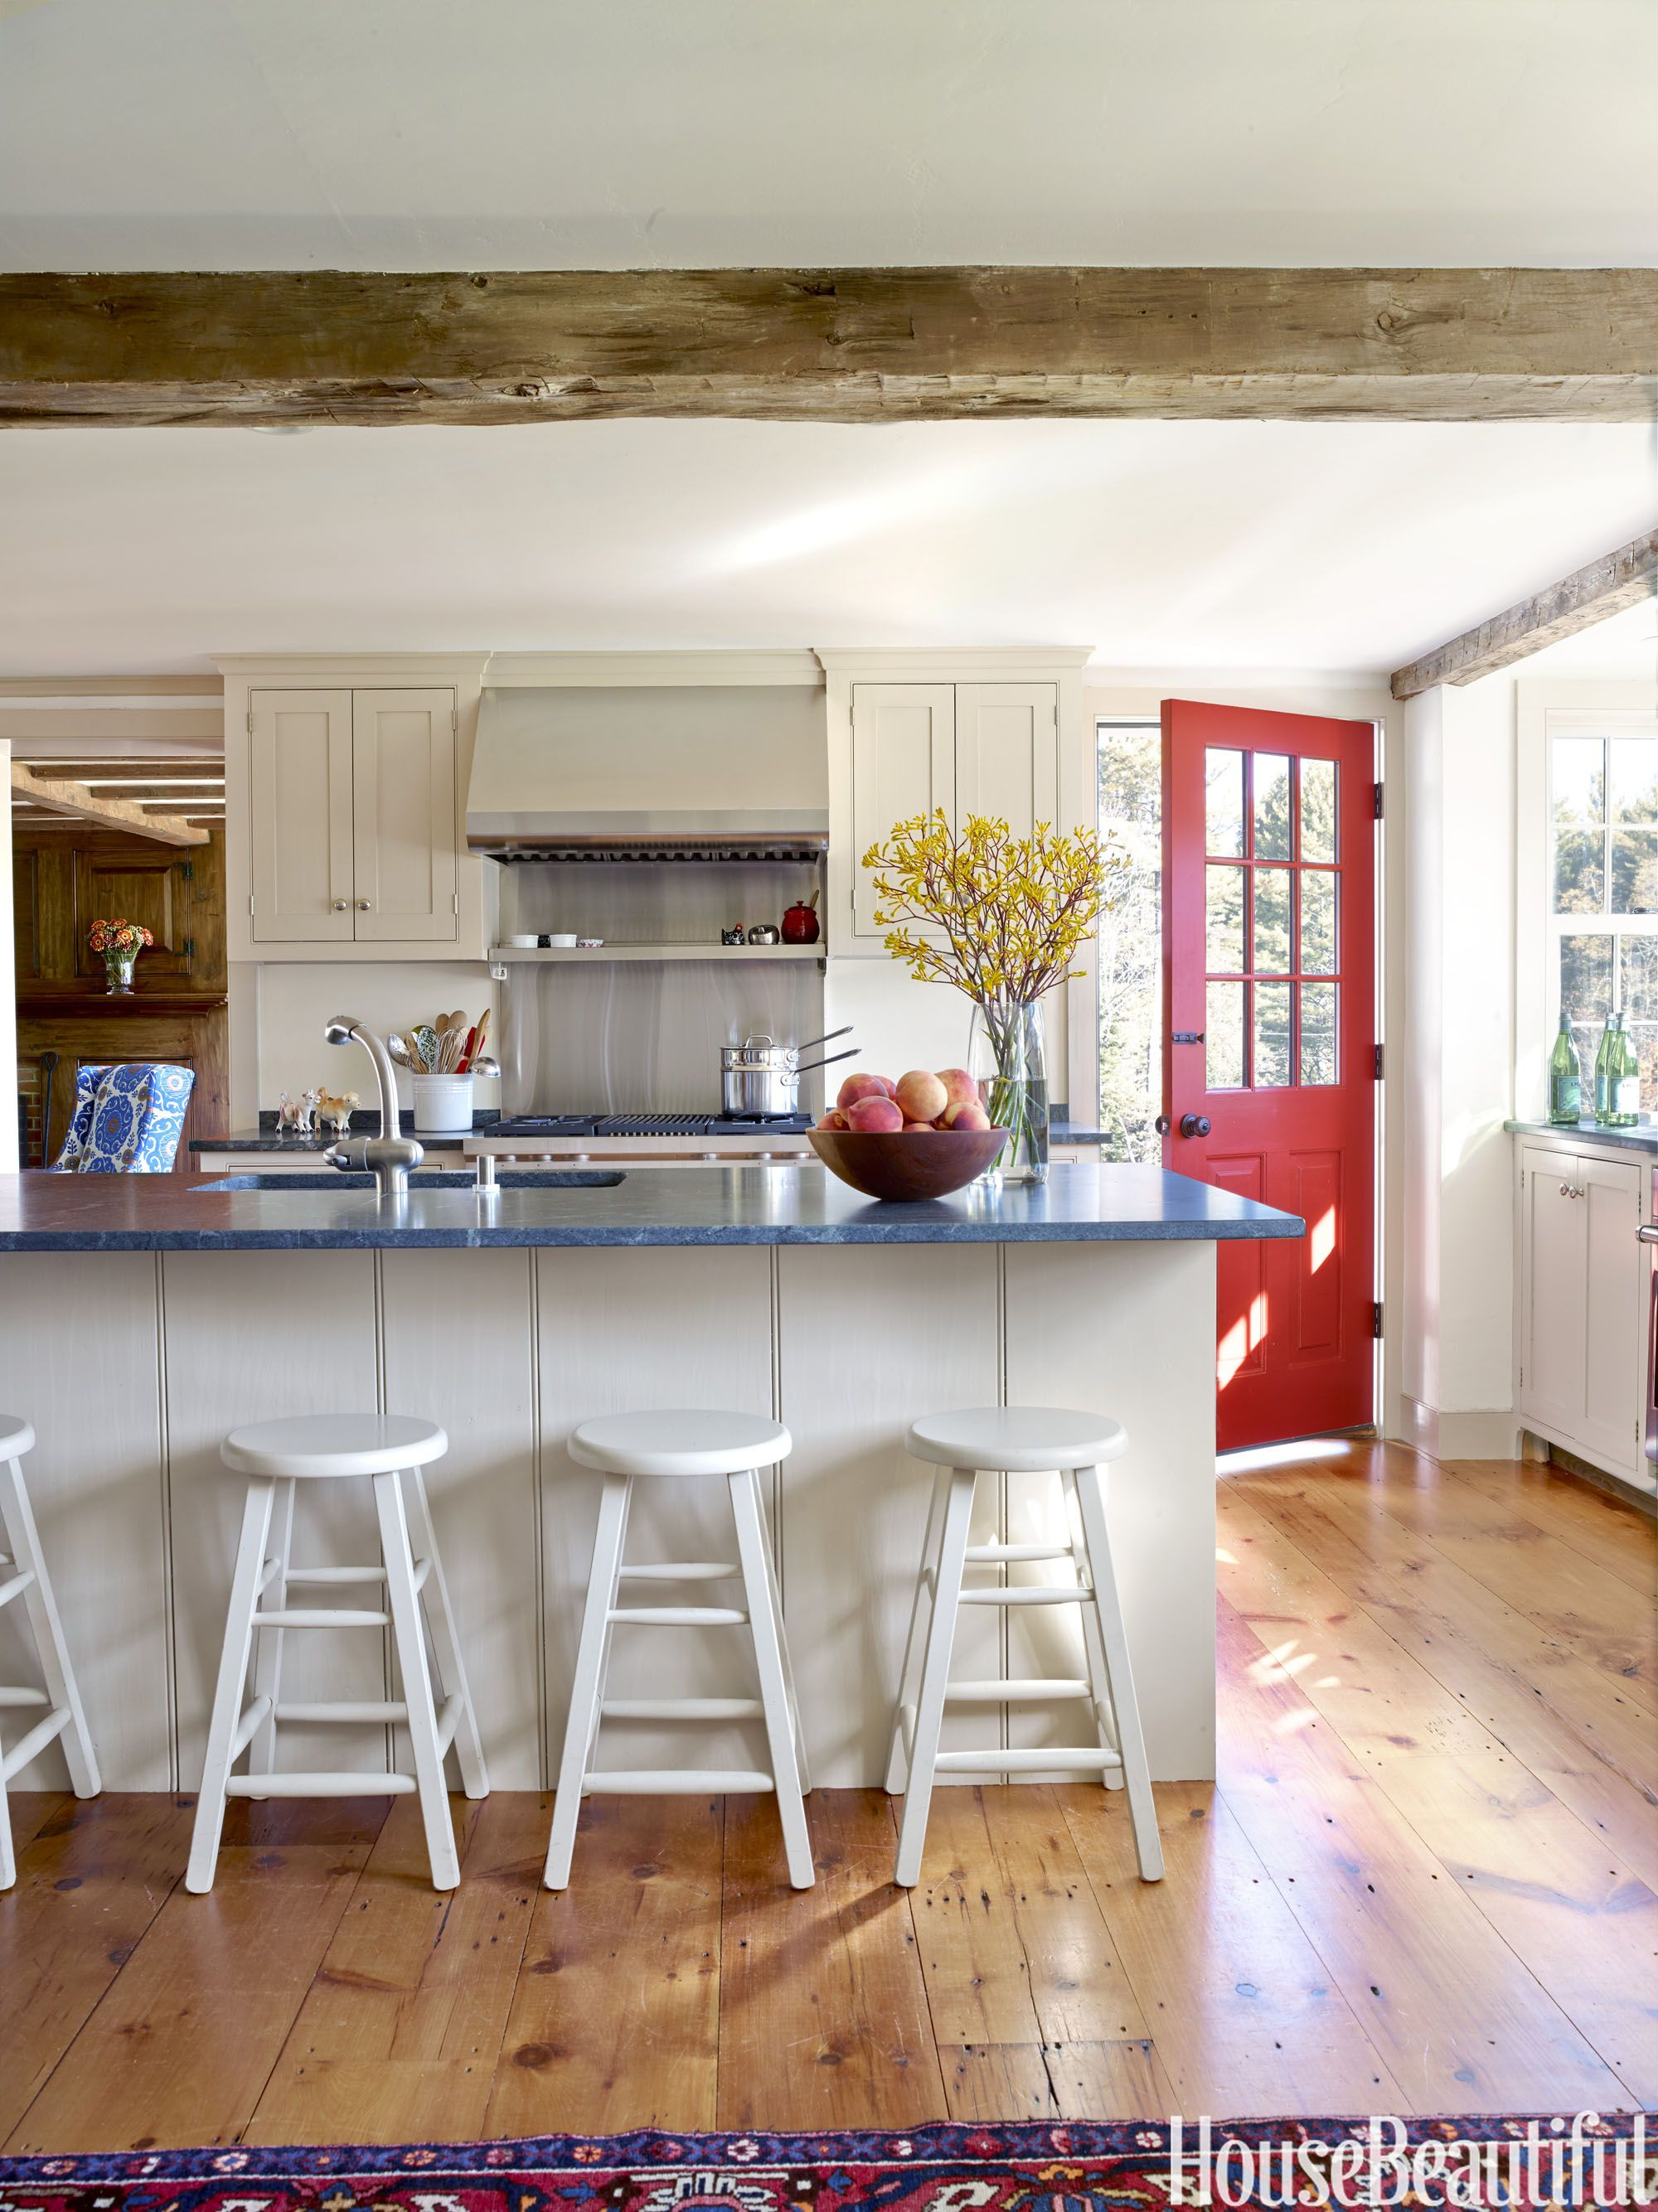 A Vermont Farmhouse With Rooms For Your Every Mood Kitchen Design Countertops Types Of Kitchen Countertops Shaker Style Kitchen Cabinets